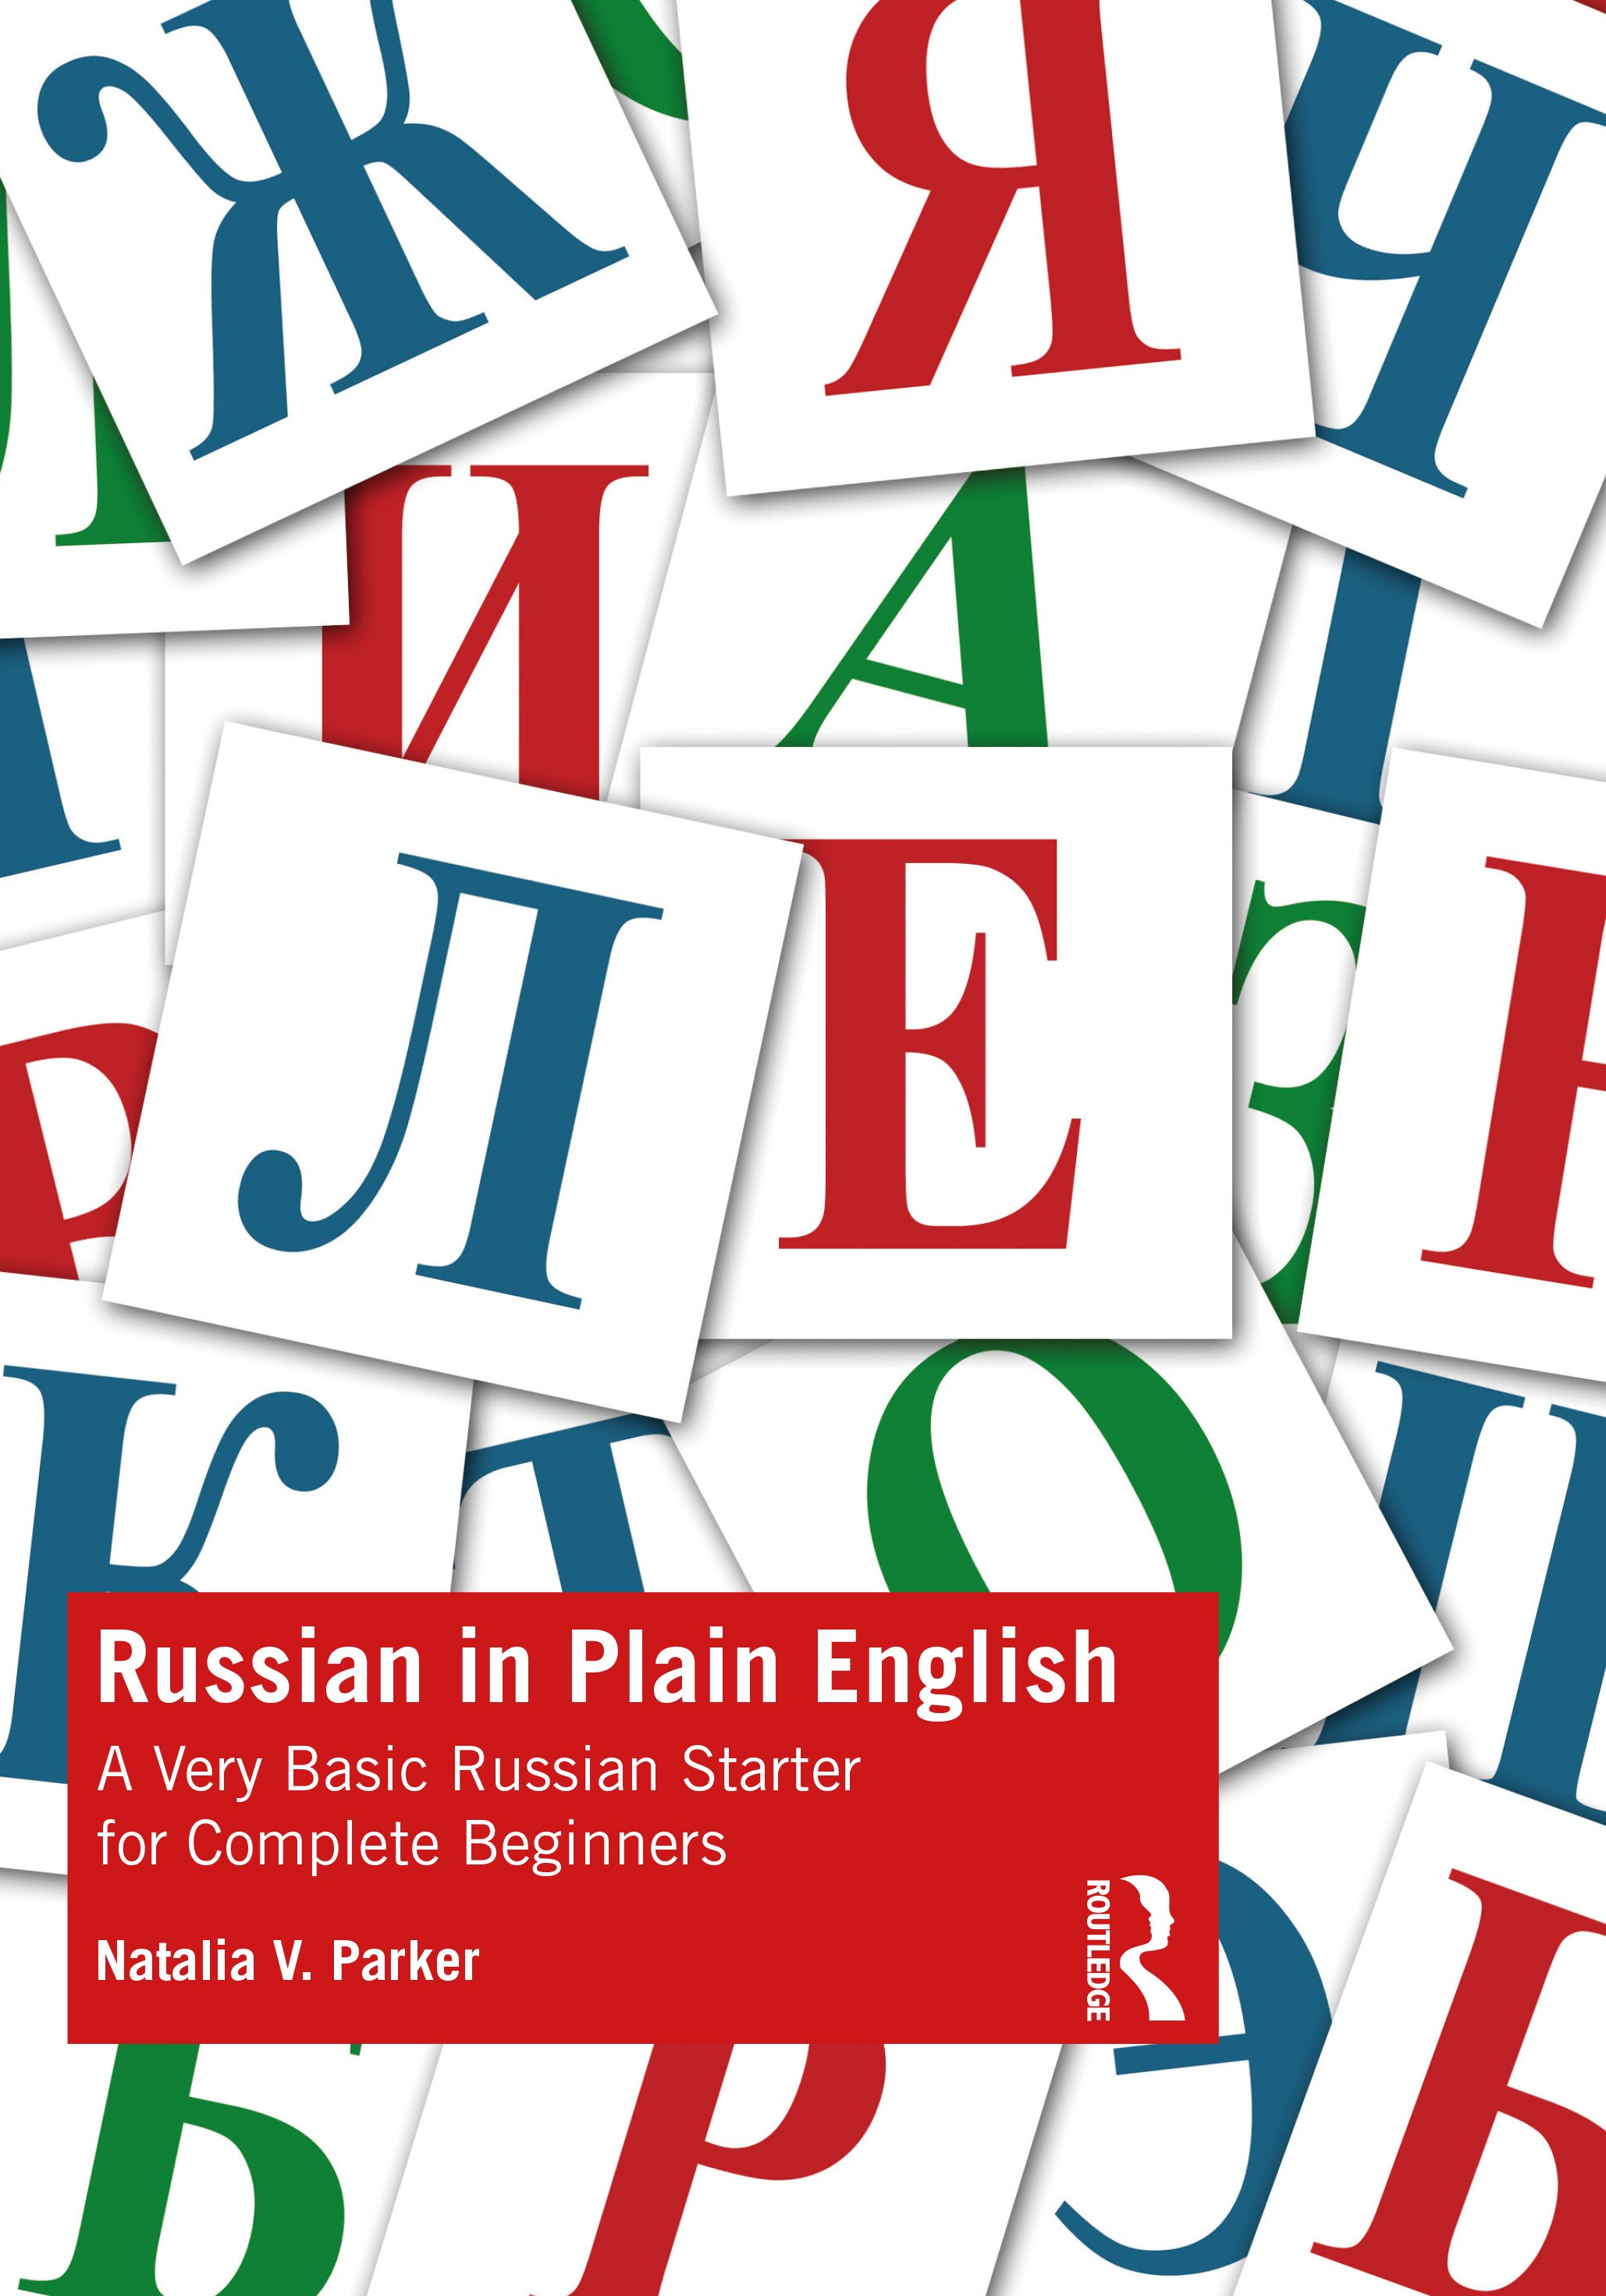 Russian in Plain English: A Very Basic Russian Starter for Complete Beginners book cover